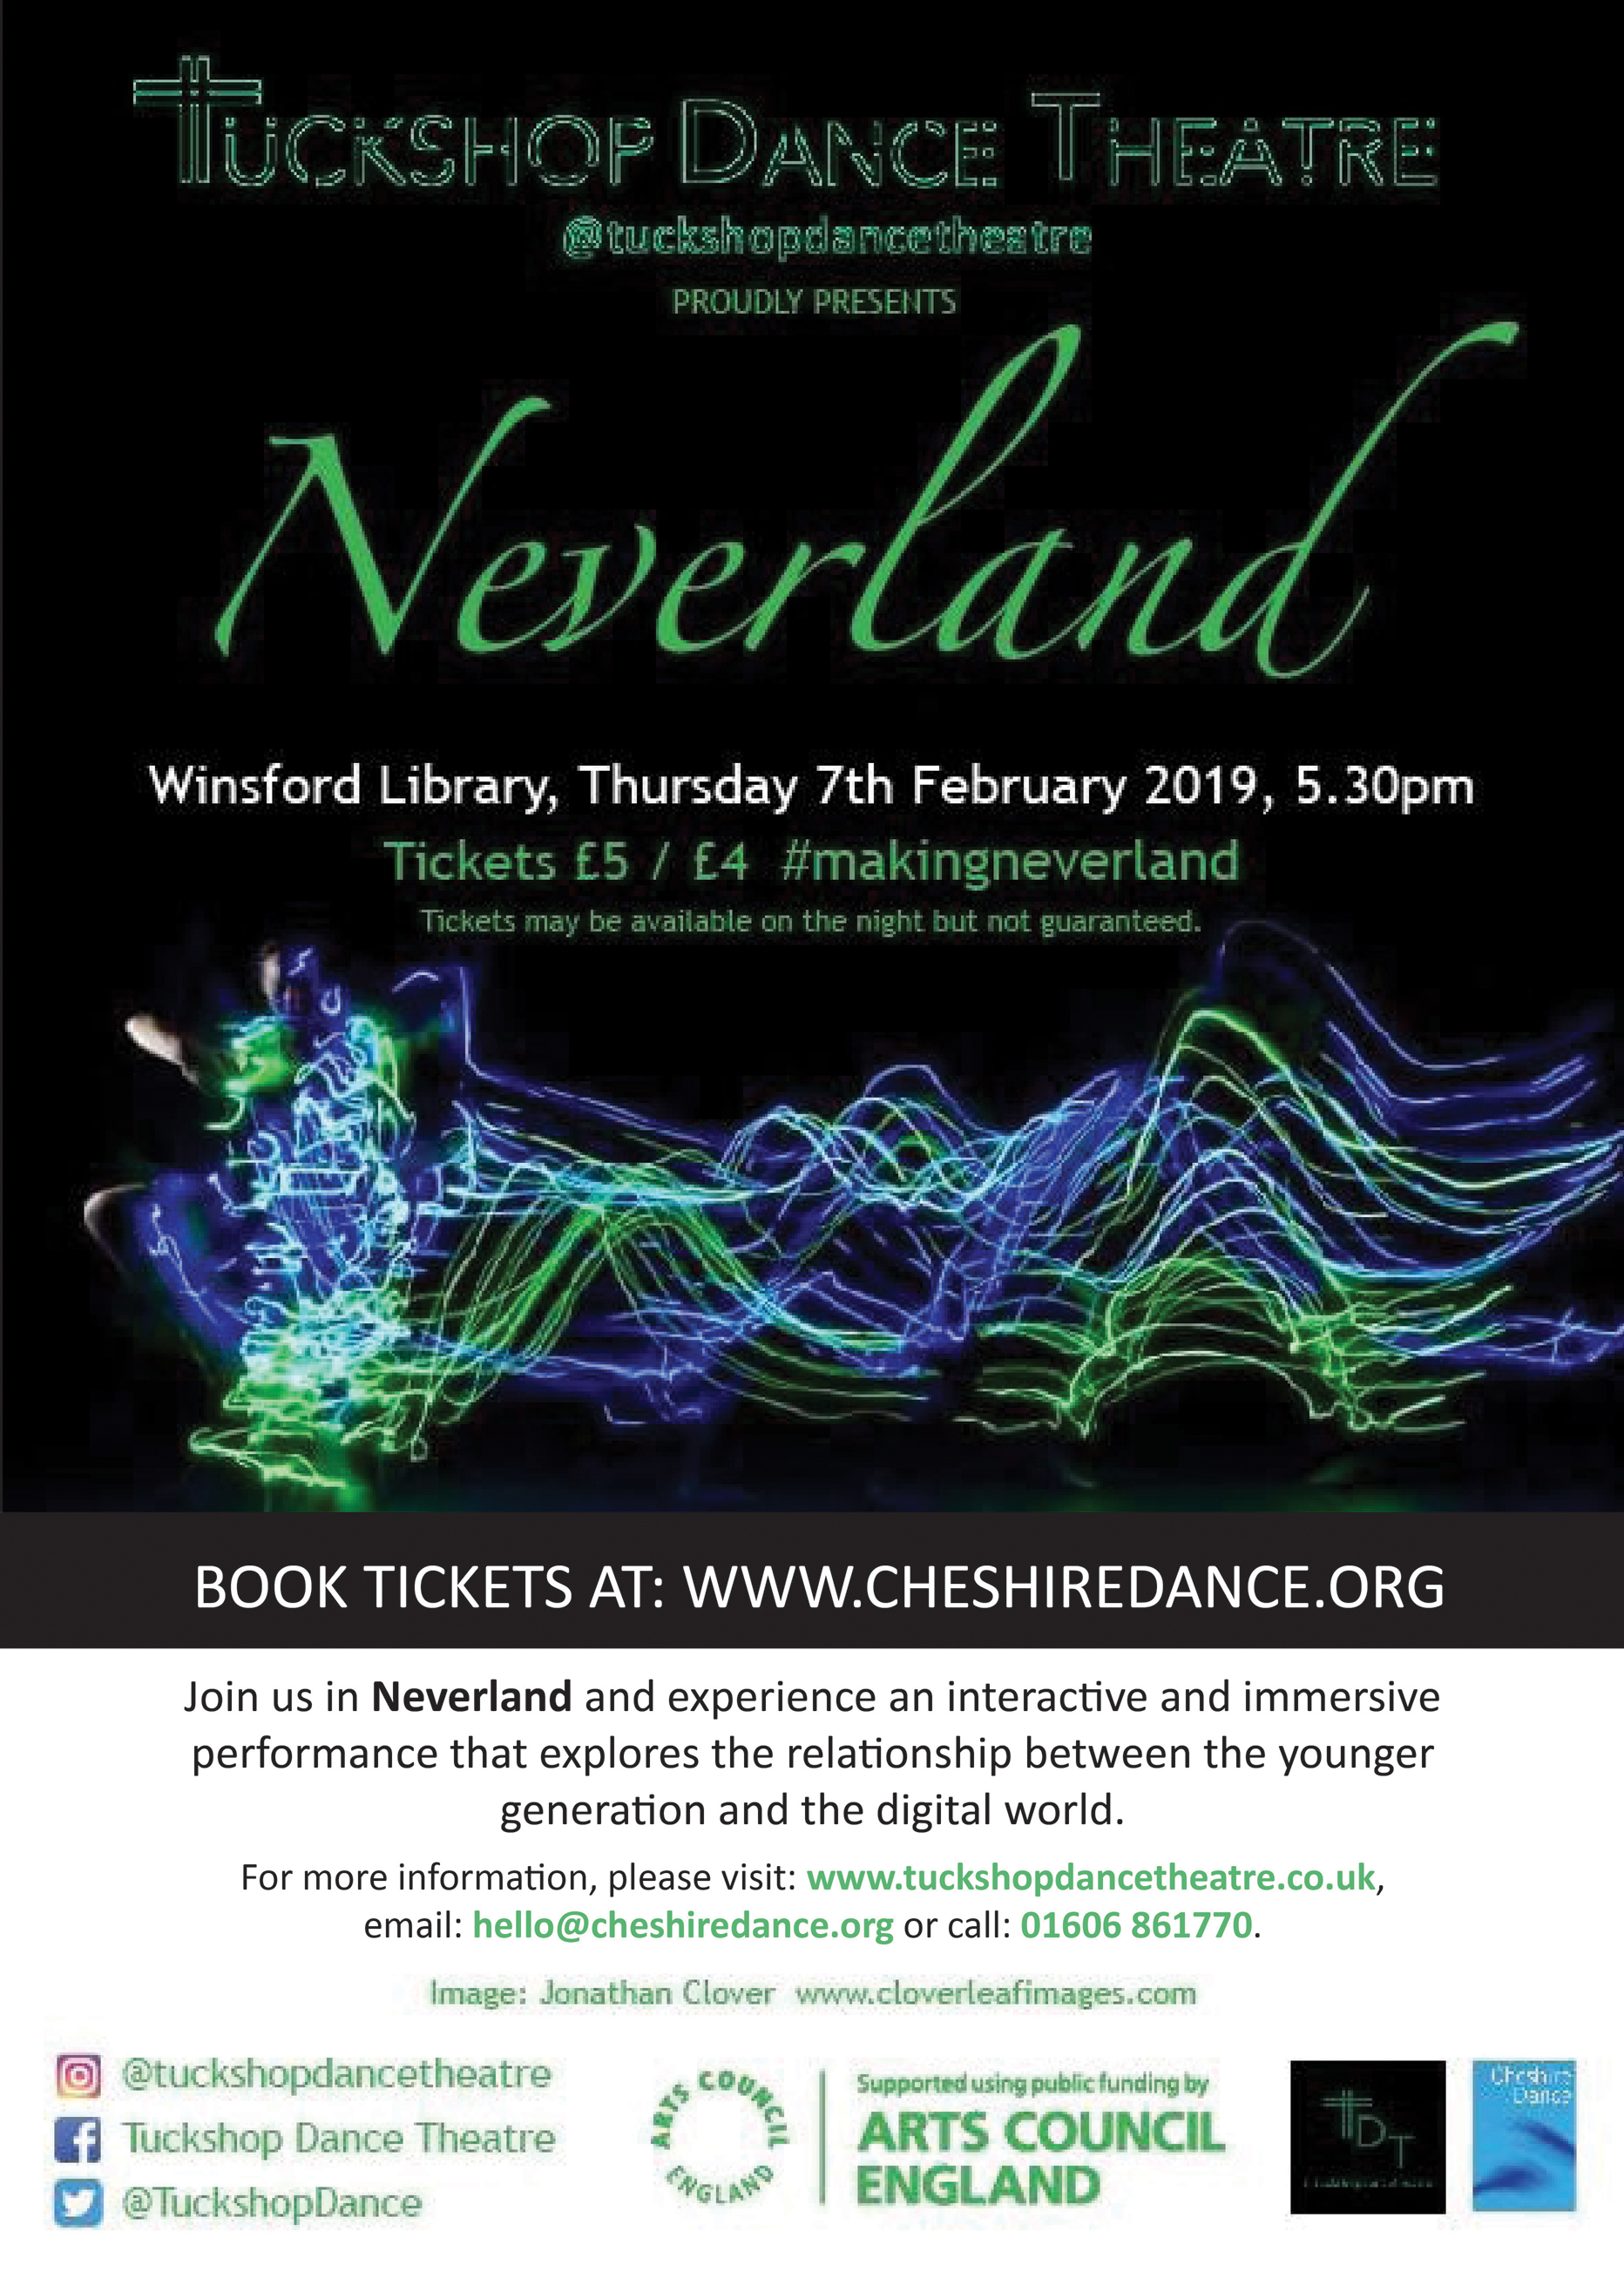 Neverland by Tuckshop Dance Theatre